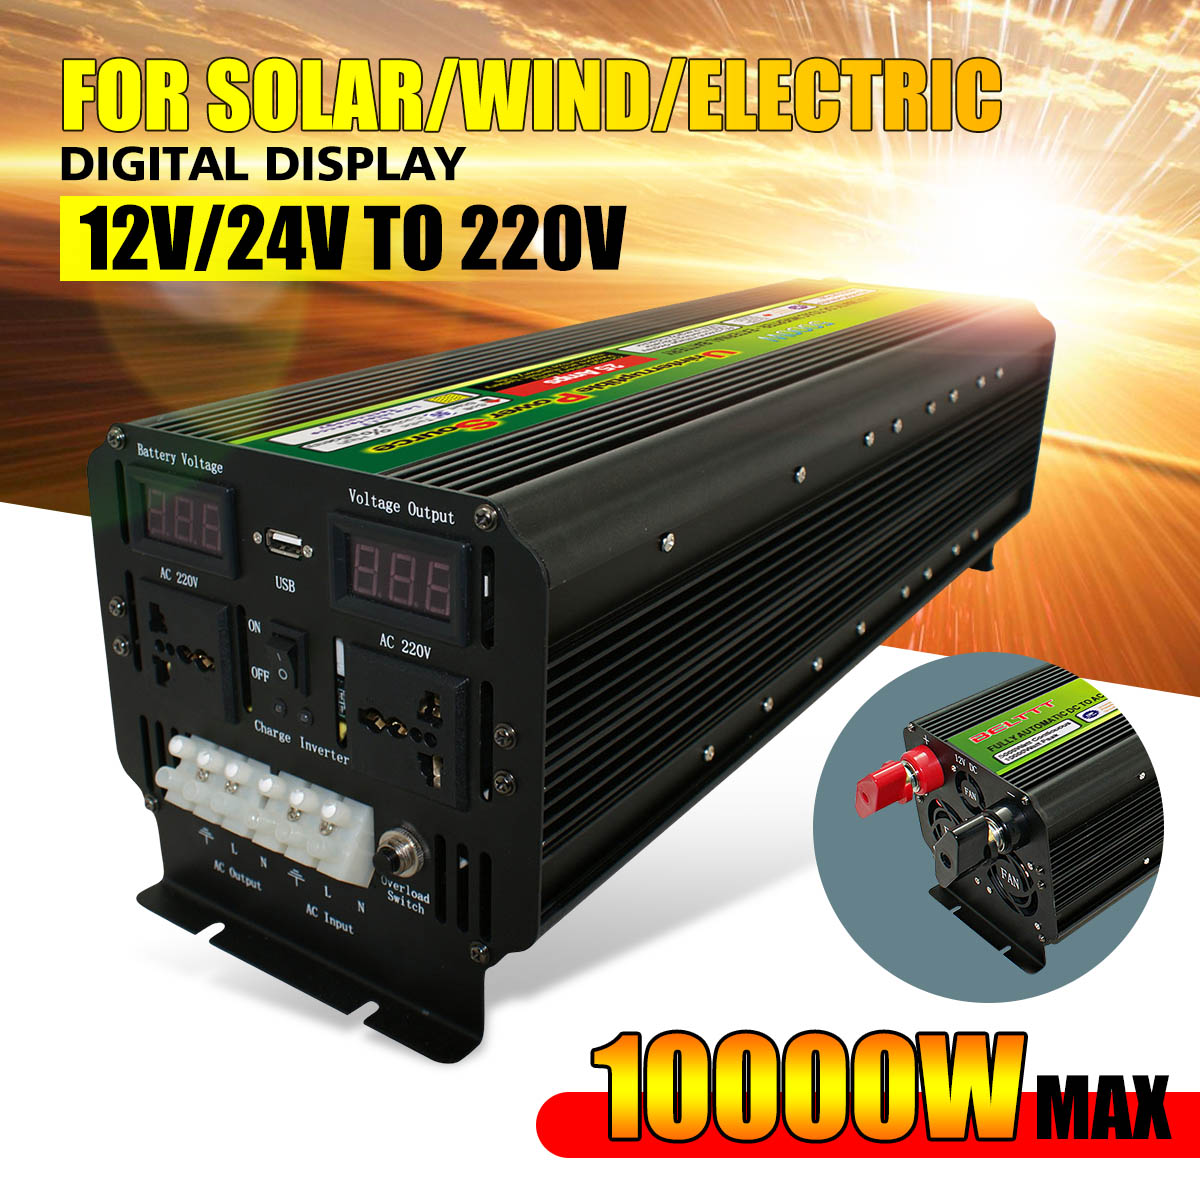 10000W (Peak) 12/24V Zu 220V UPS Power Inverter für Solar/Wind Aufladbare LCD display 5000Watt Geändert sinus Welle Konverter